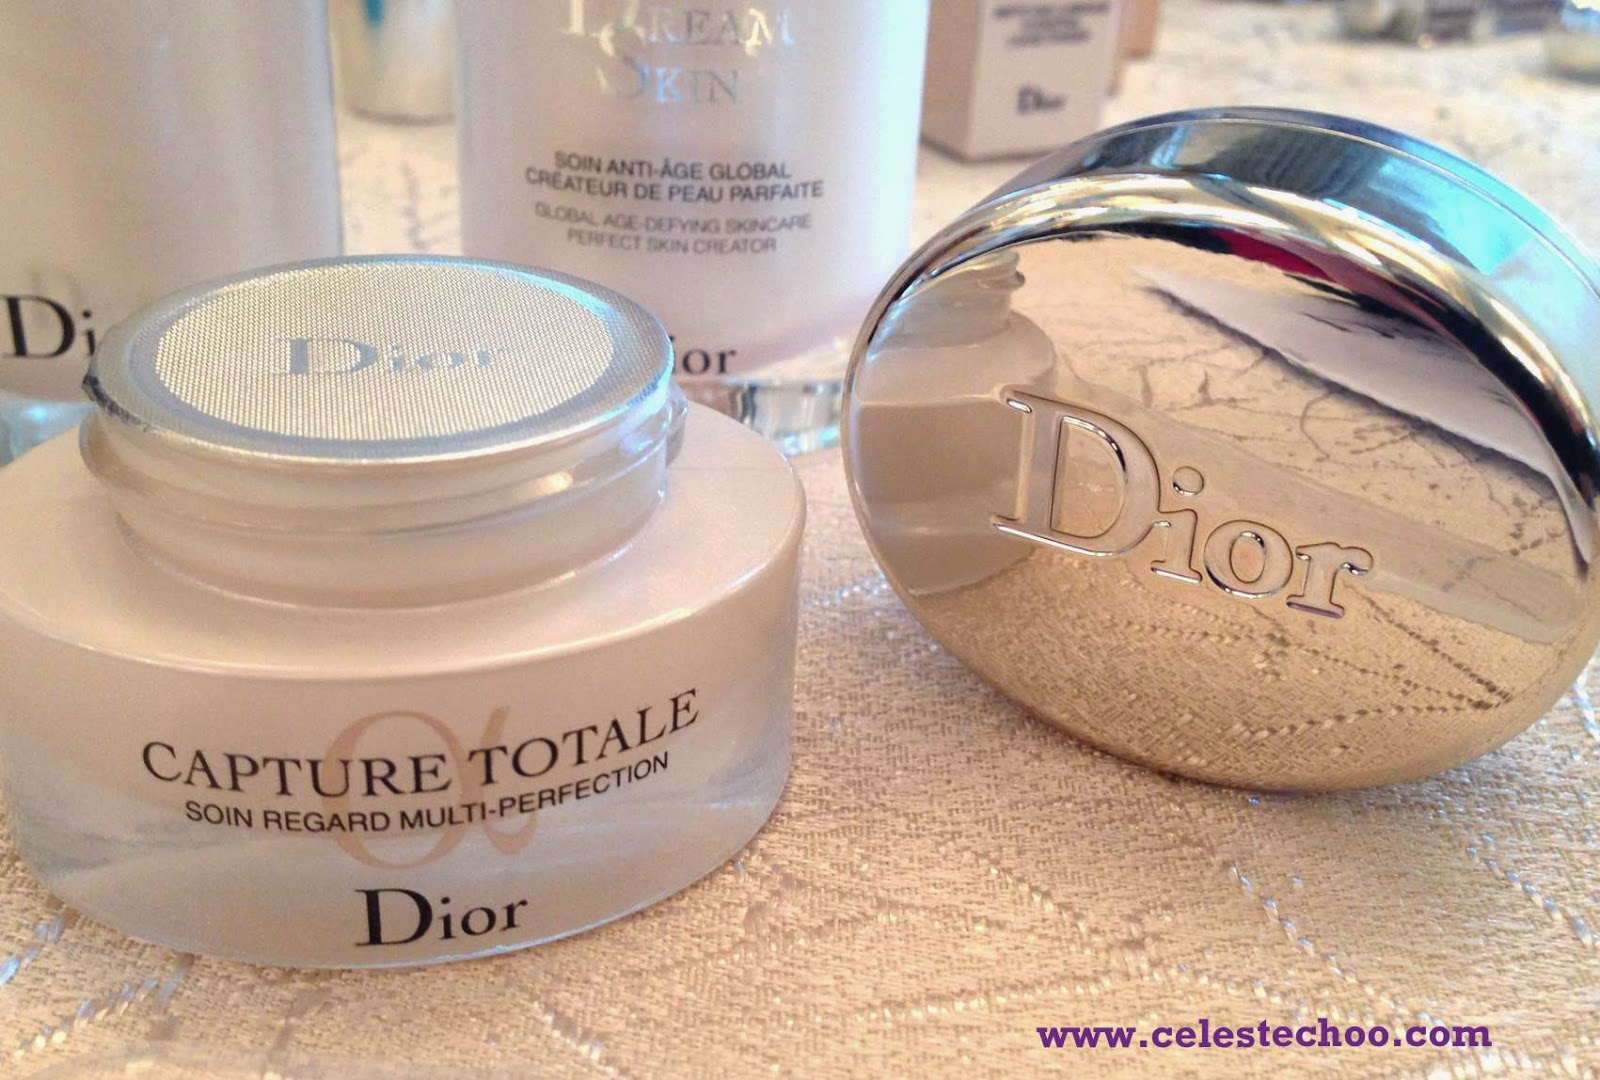 dior_beauty_makeup_workshop_capture_totale